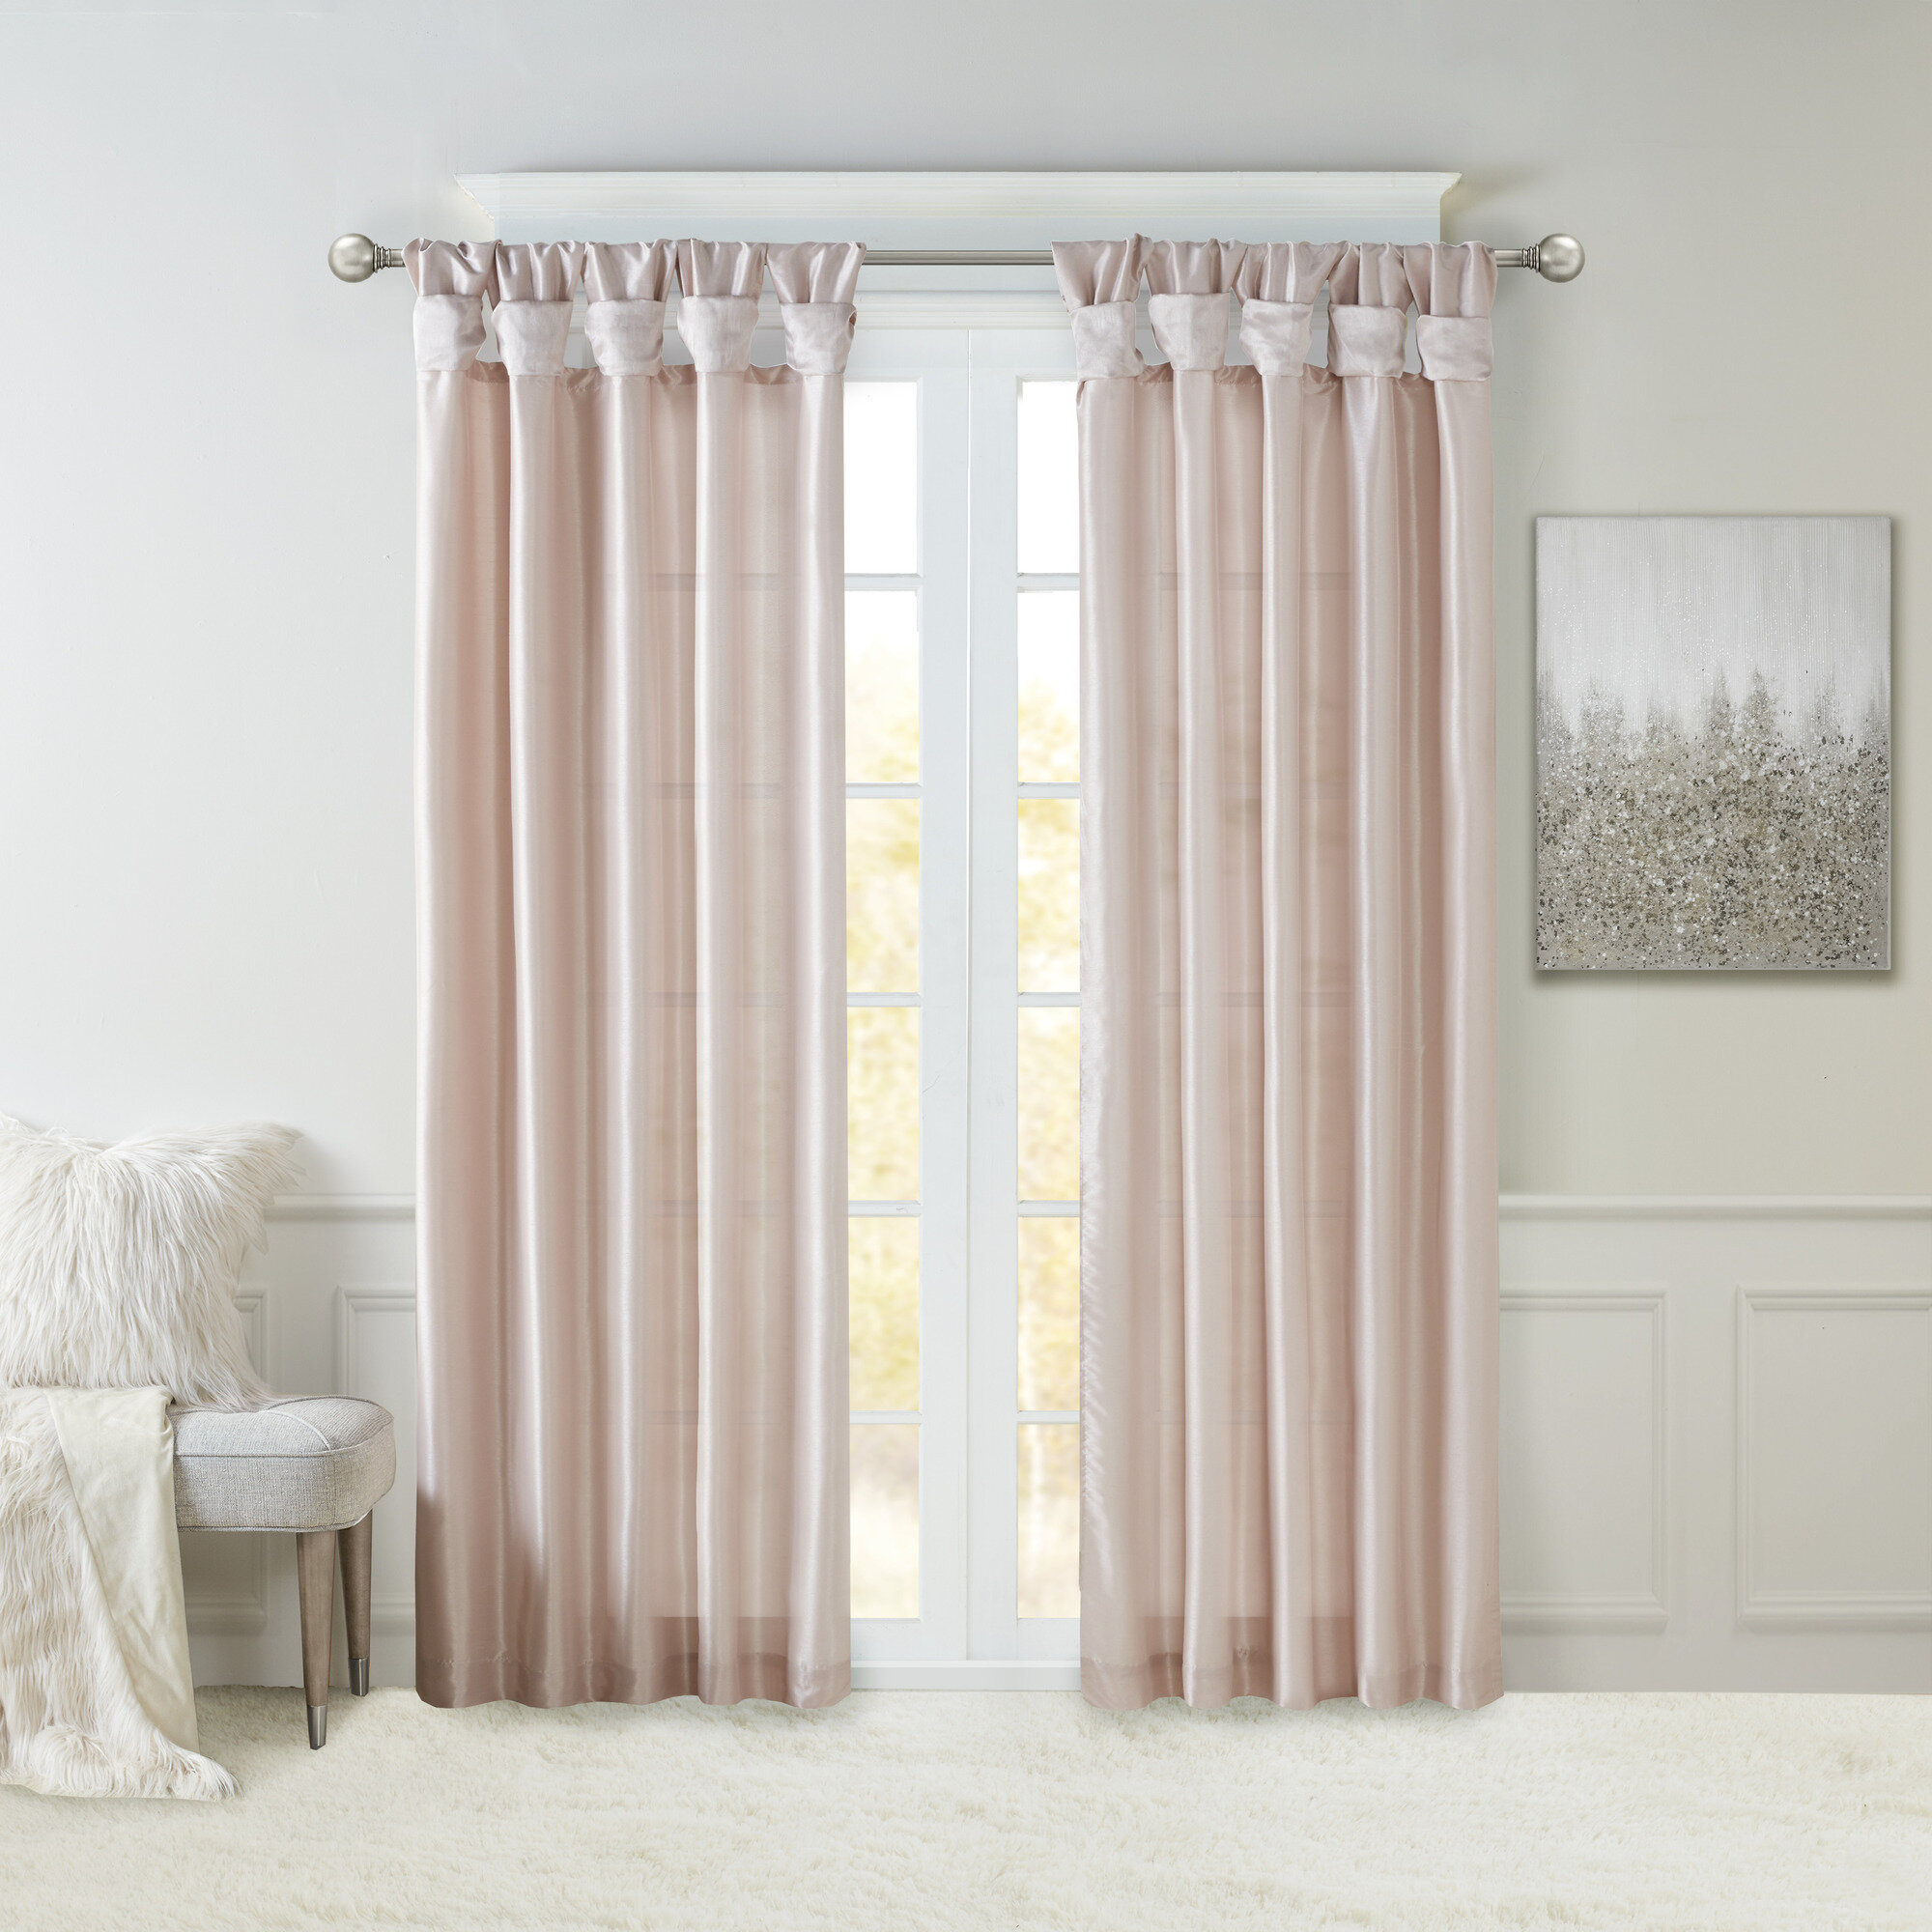 Rivau Solid Tab Top Single Curtain Panel Pertaining To Tassels Applique Sheer Rod Pocket Top Curtain Panel Pairs (View 25 of 30)